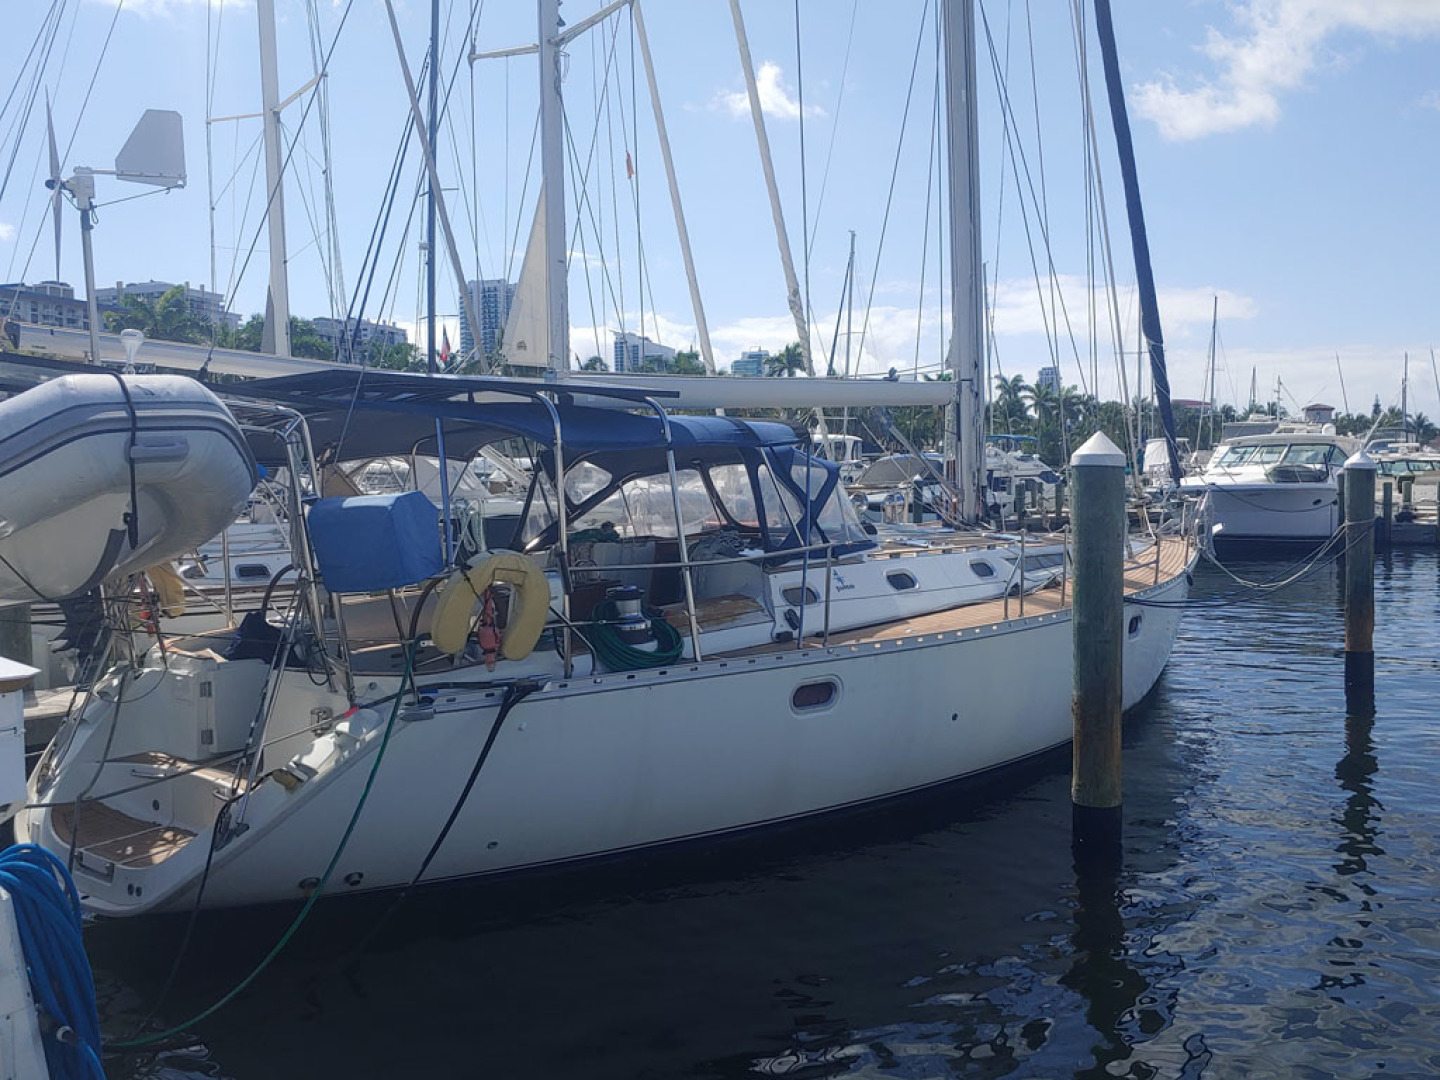 Jeanneau-Sun Odyssey 52.2 2001-Perseverance Hollywood-Florida-United States-Starboard Aft Profile-1640971 | Thumbnail